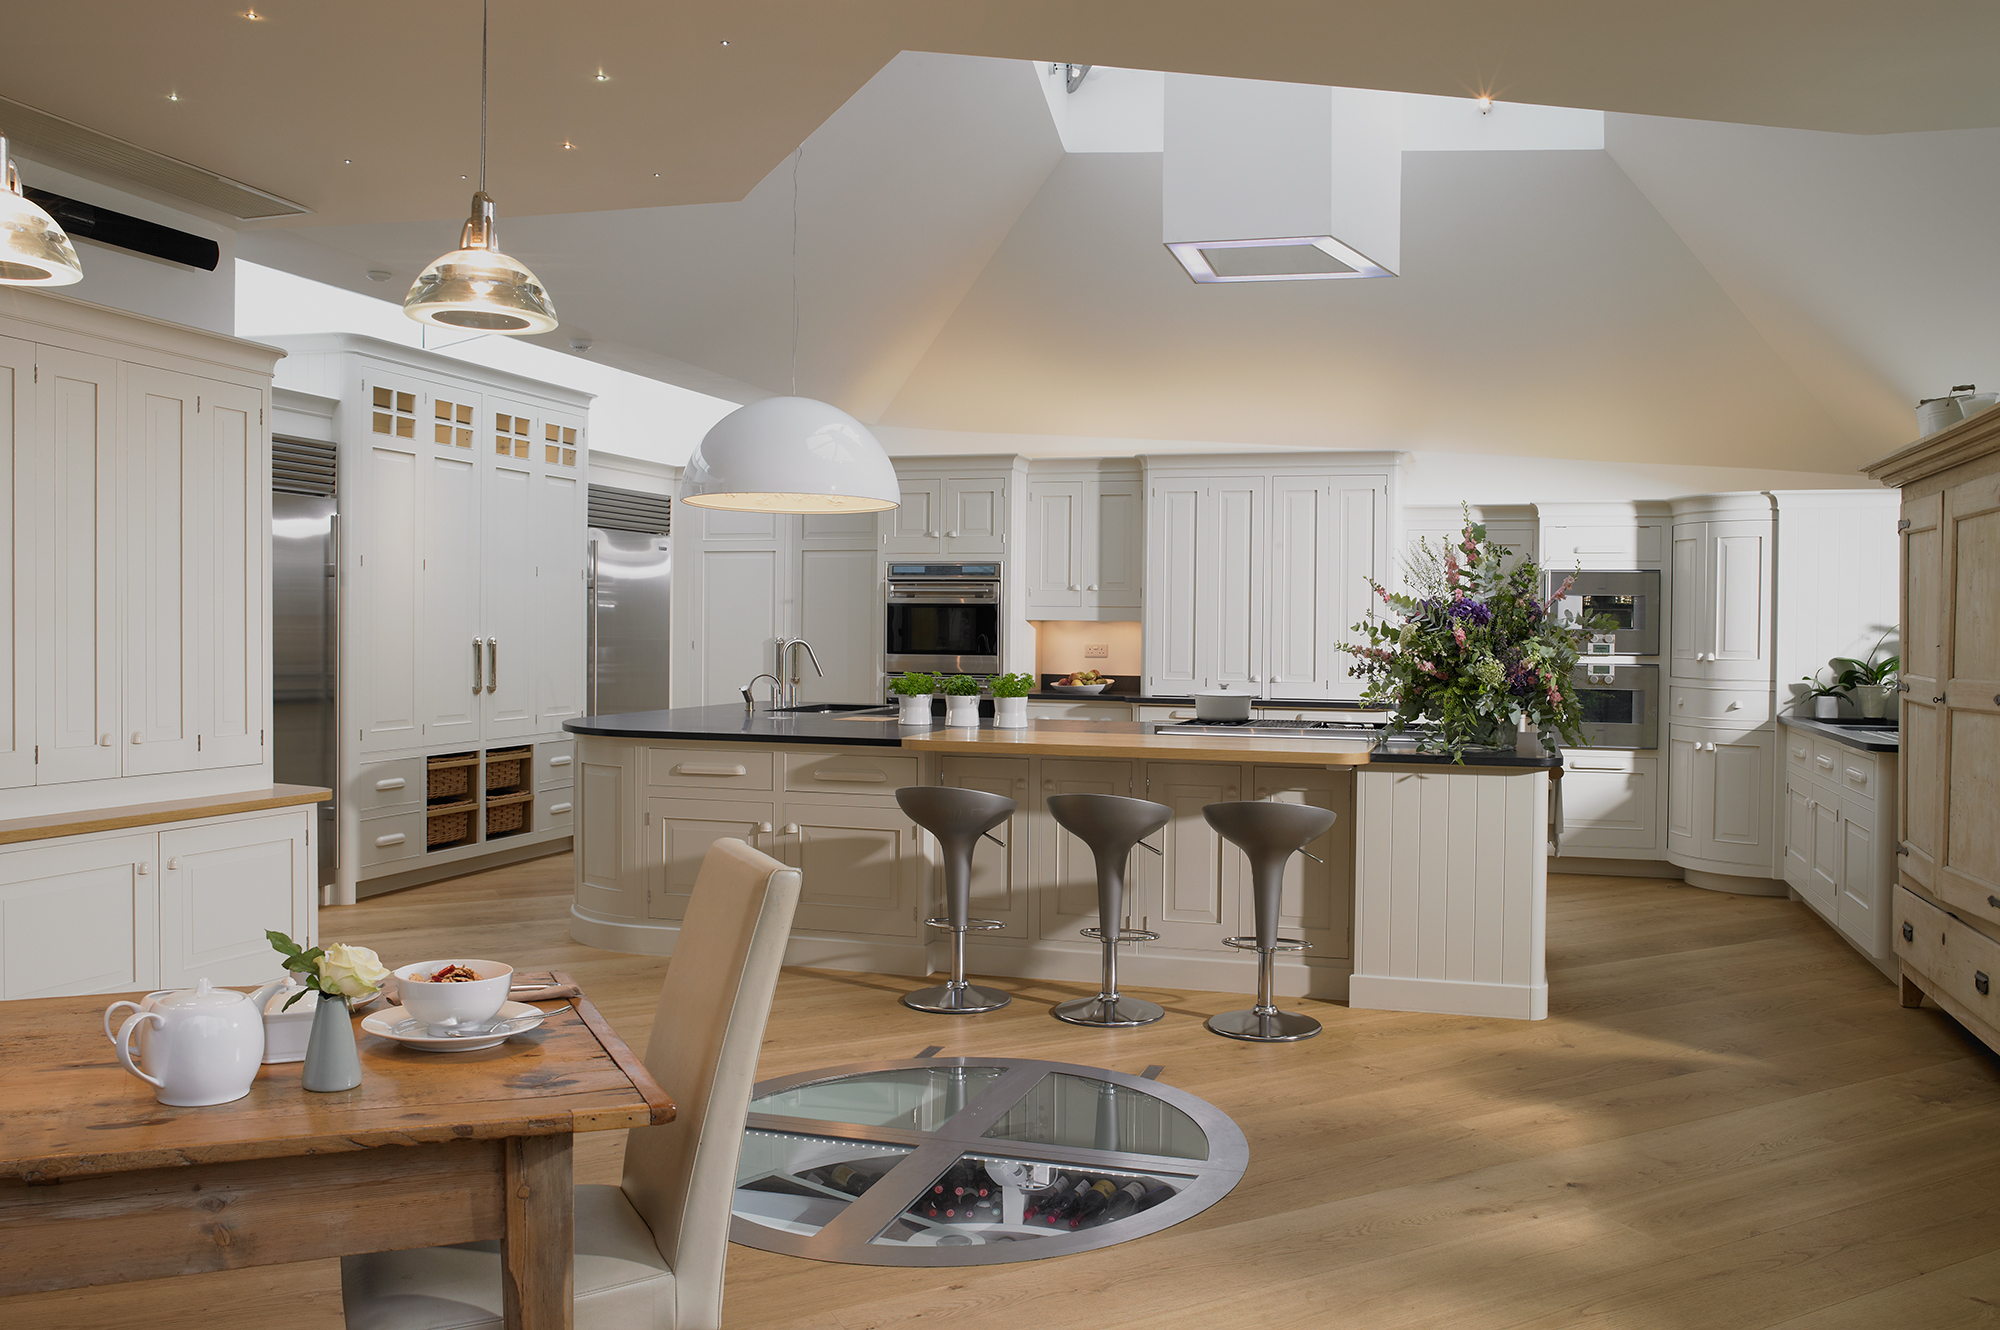 Mark wilkinson furniture collection english classic kitchen 8